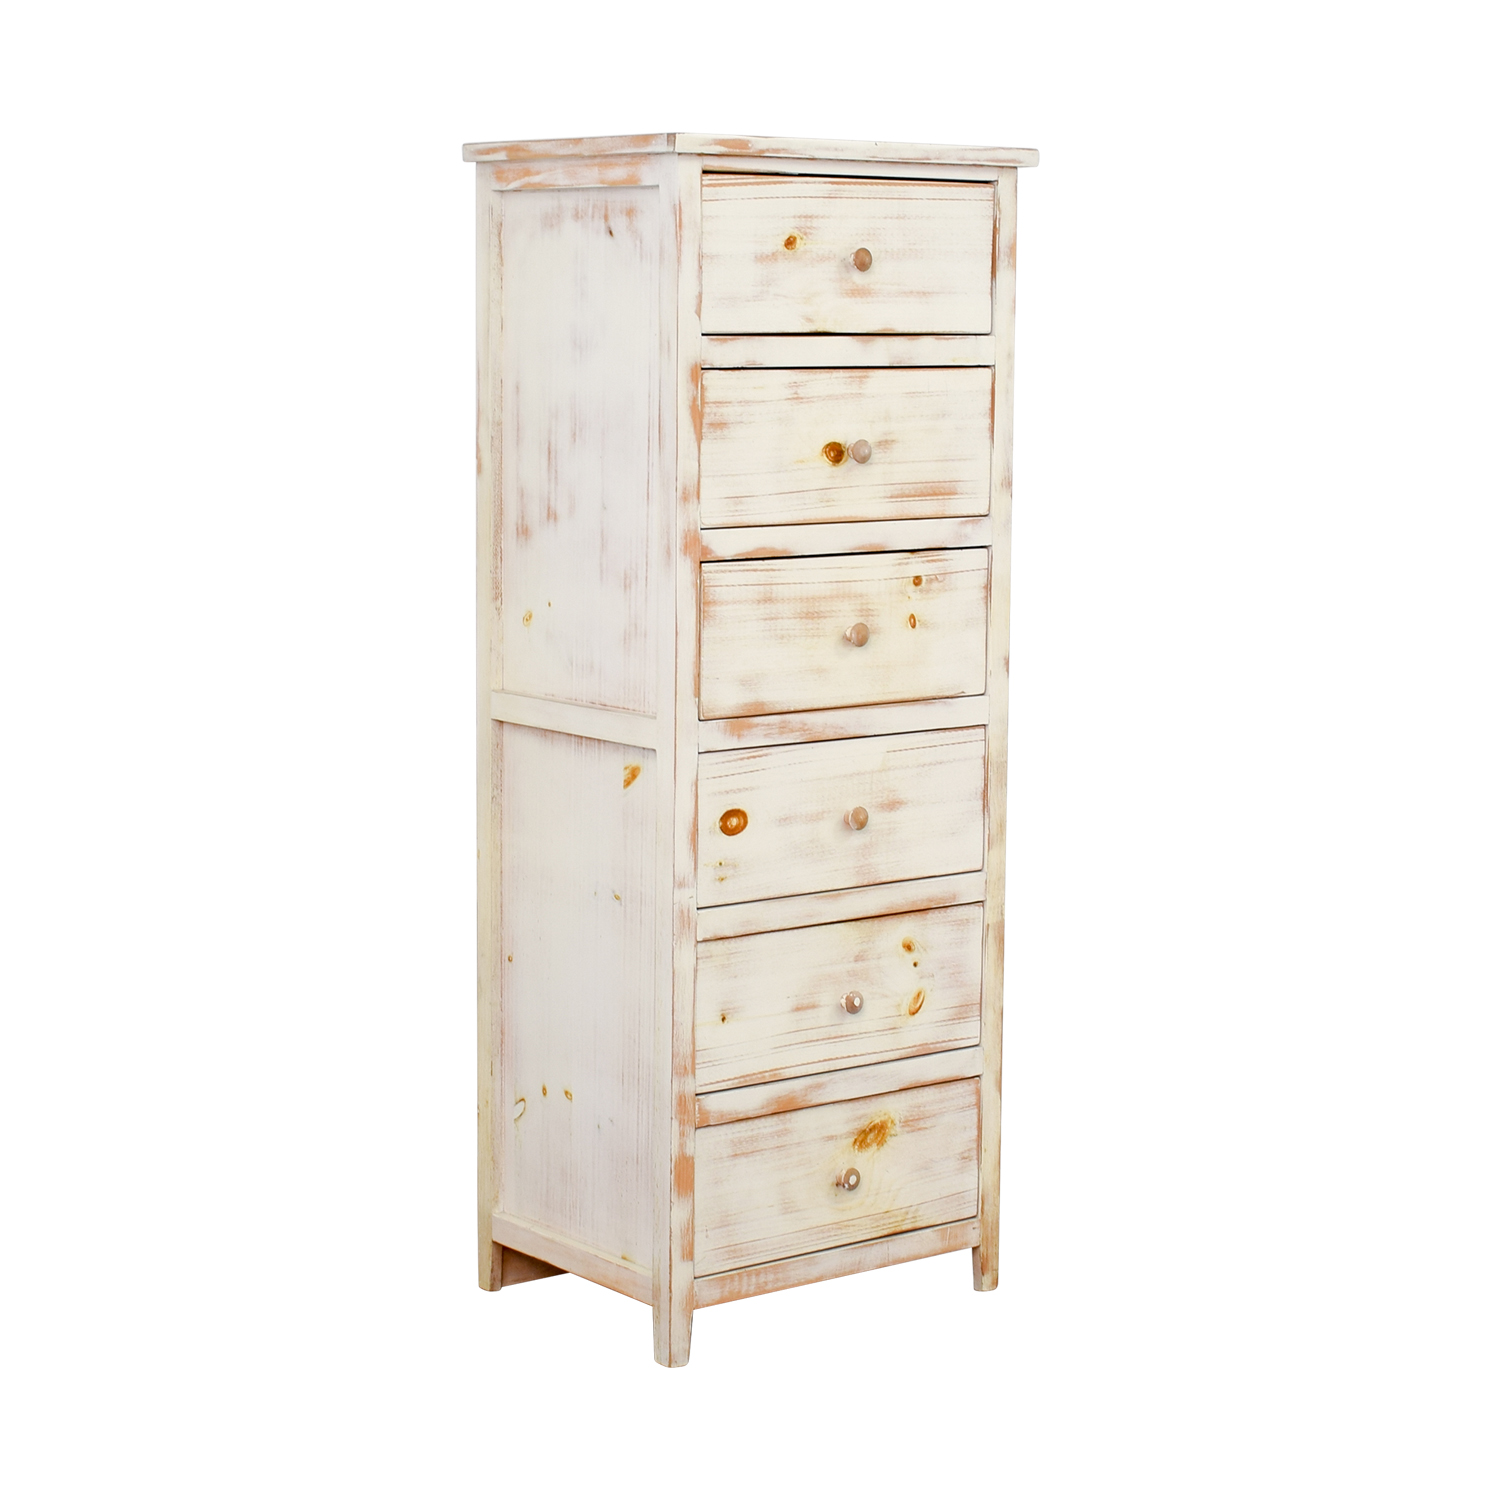 Light Brown Cream Wash Wood Six-Drawer Dresser for sale